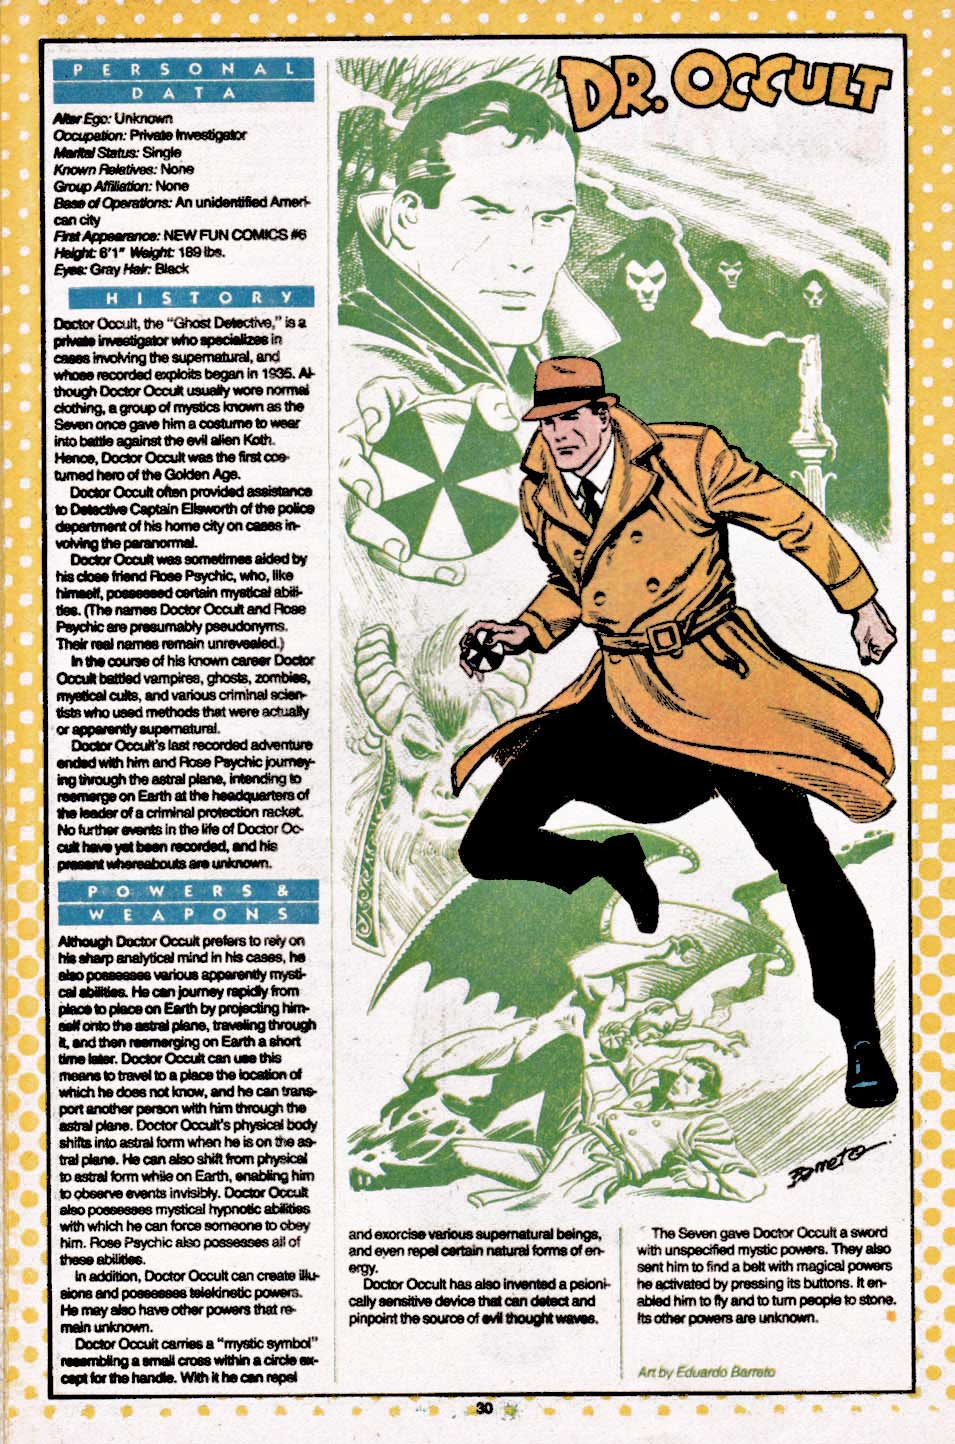 Dr Occult - Who's Who: The Definitive Directory of the DC Universe #6 (August 1985) by Eduardo Barreto